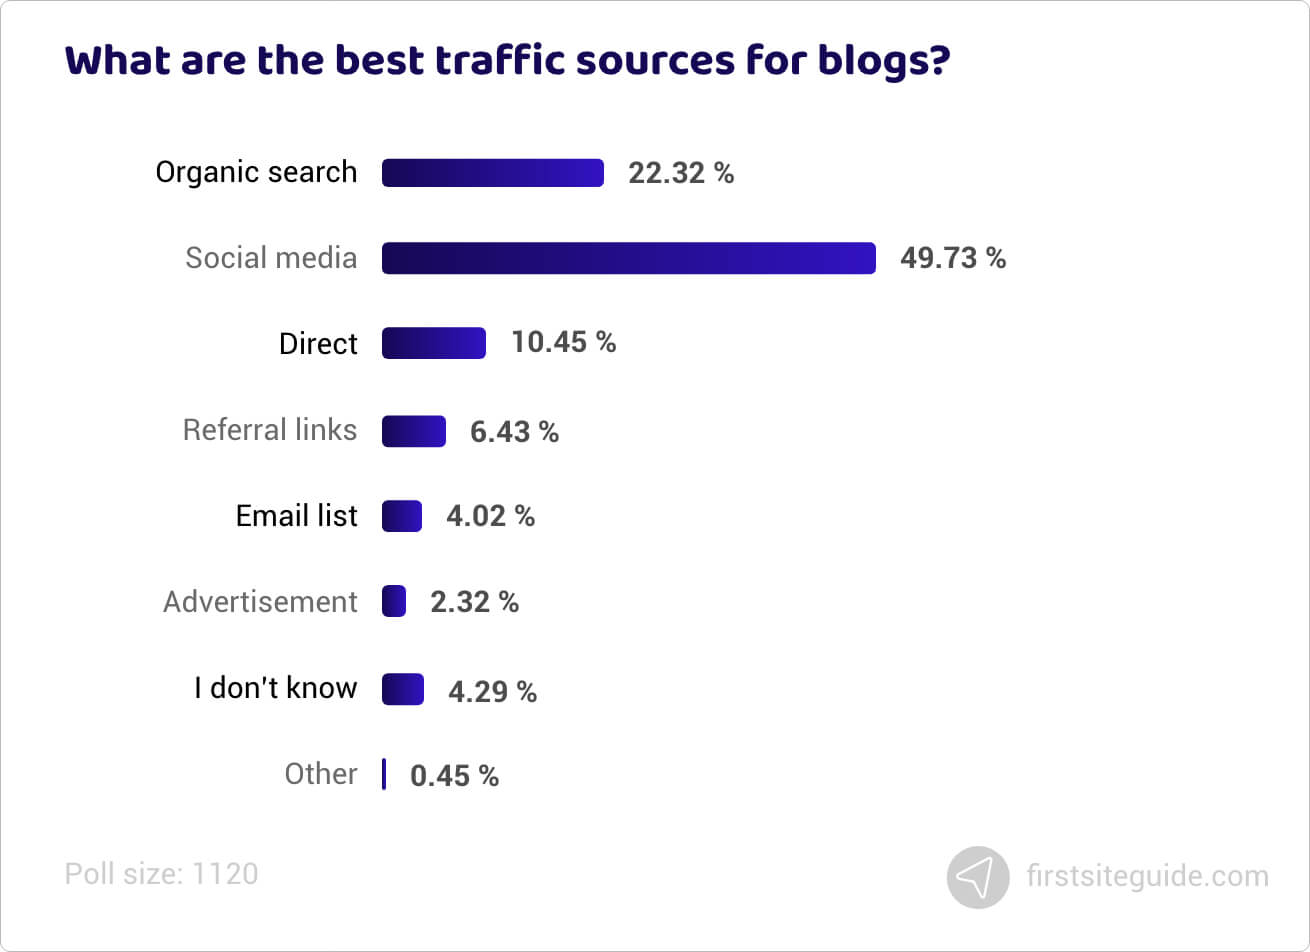 What are the best traffic sources for blogs